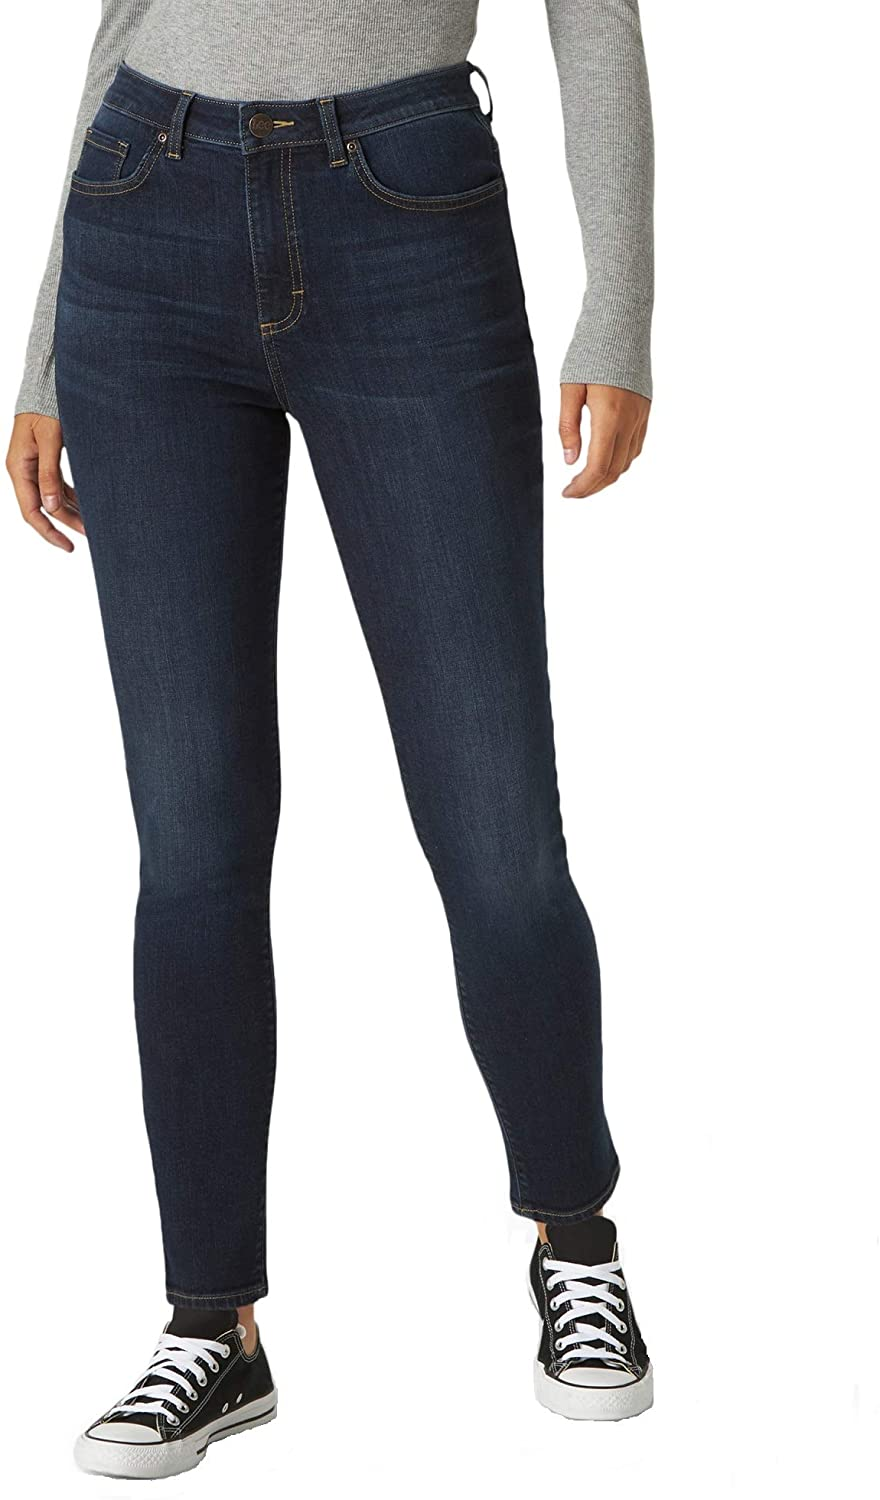 Lee Women's Slim Fit Jean Rise Brand new Skinny High Beauty products